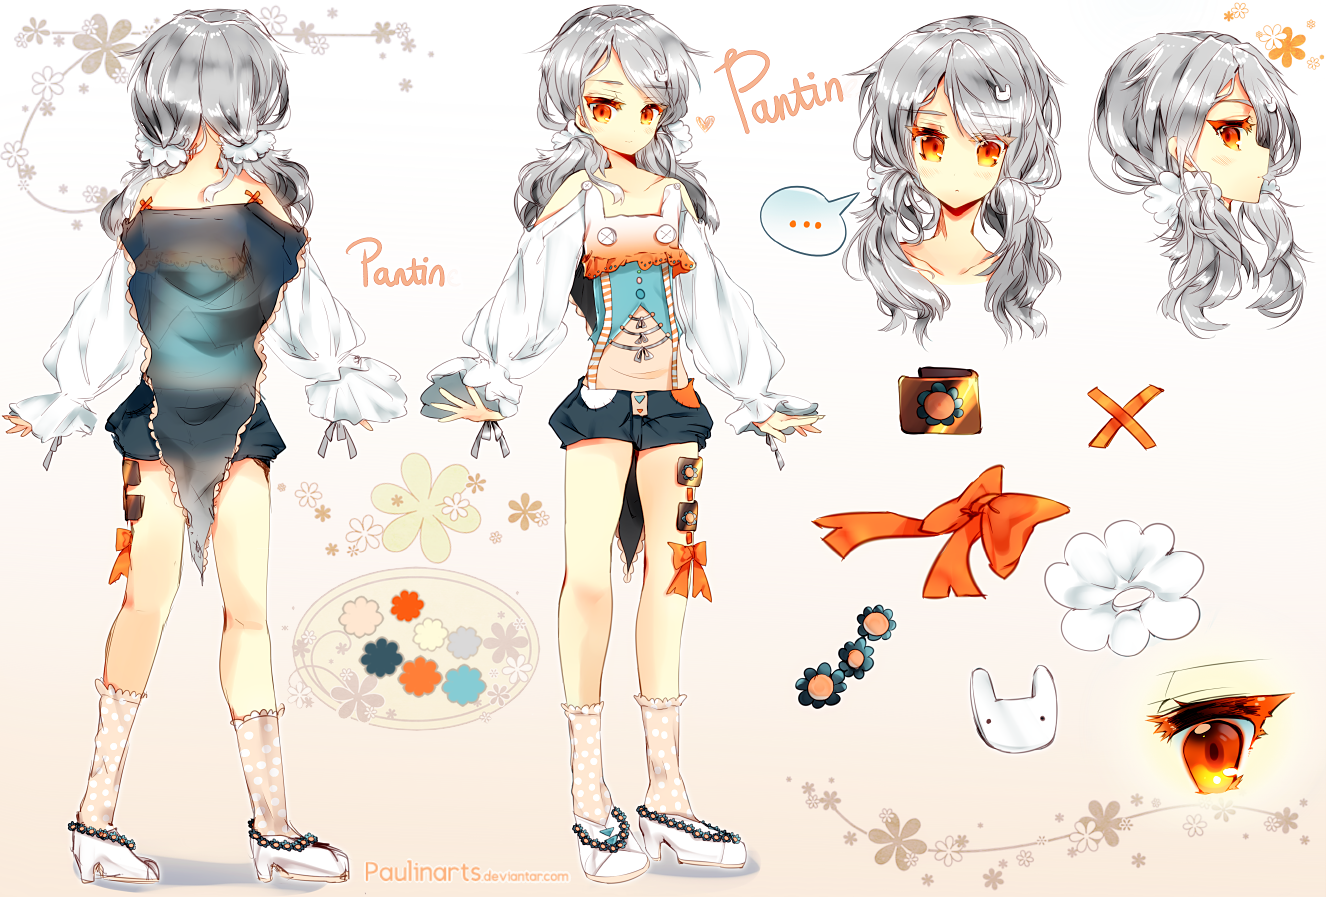 Help Me Design My House Character Sheet Pantin By Lapia On Deviantart